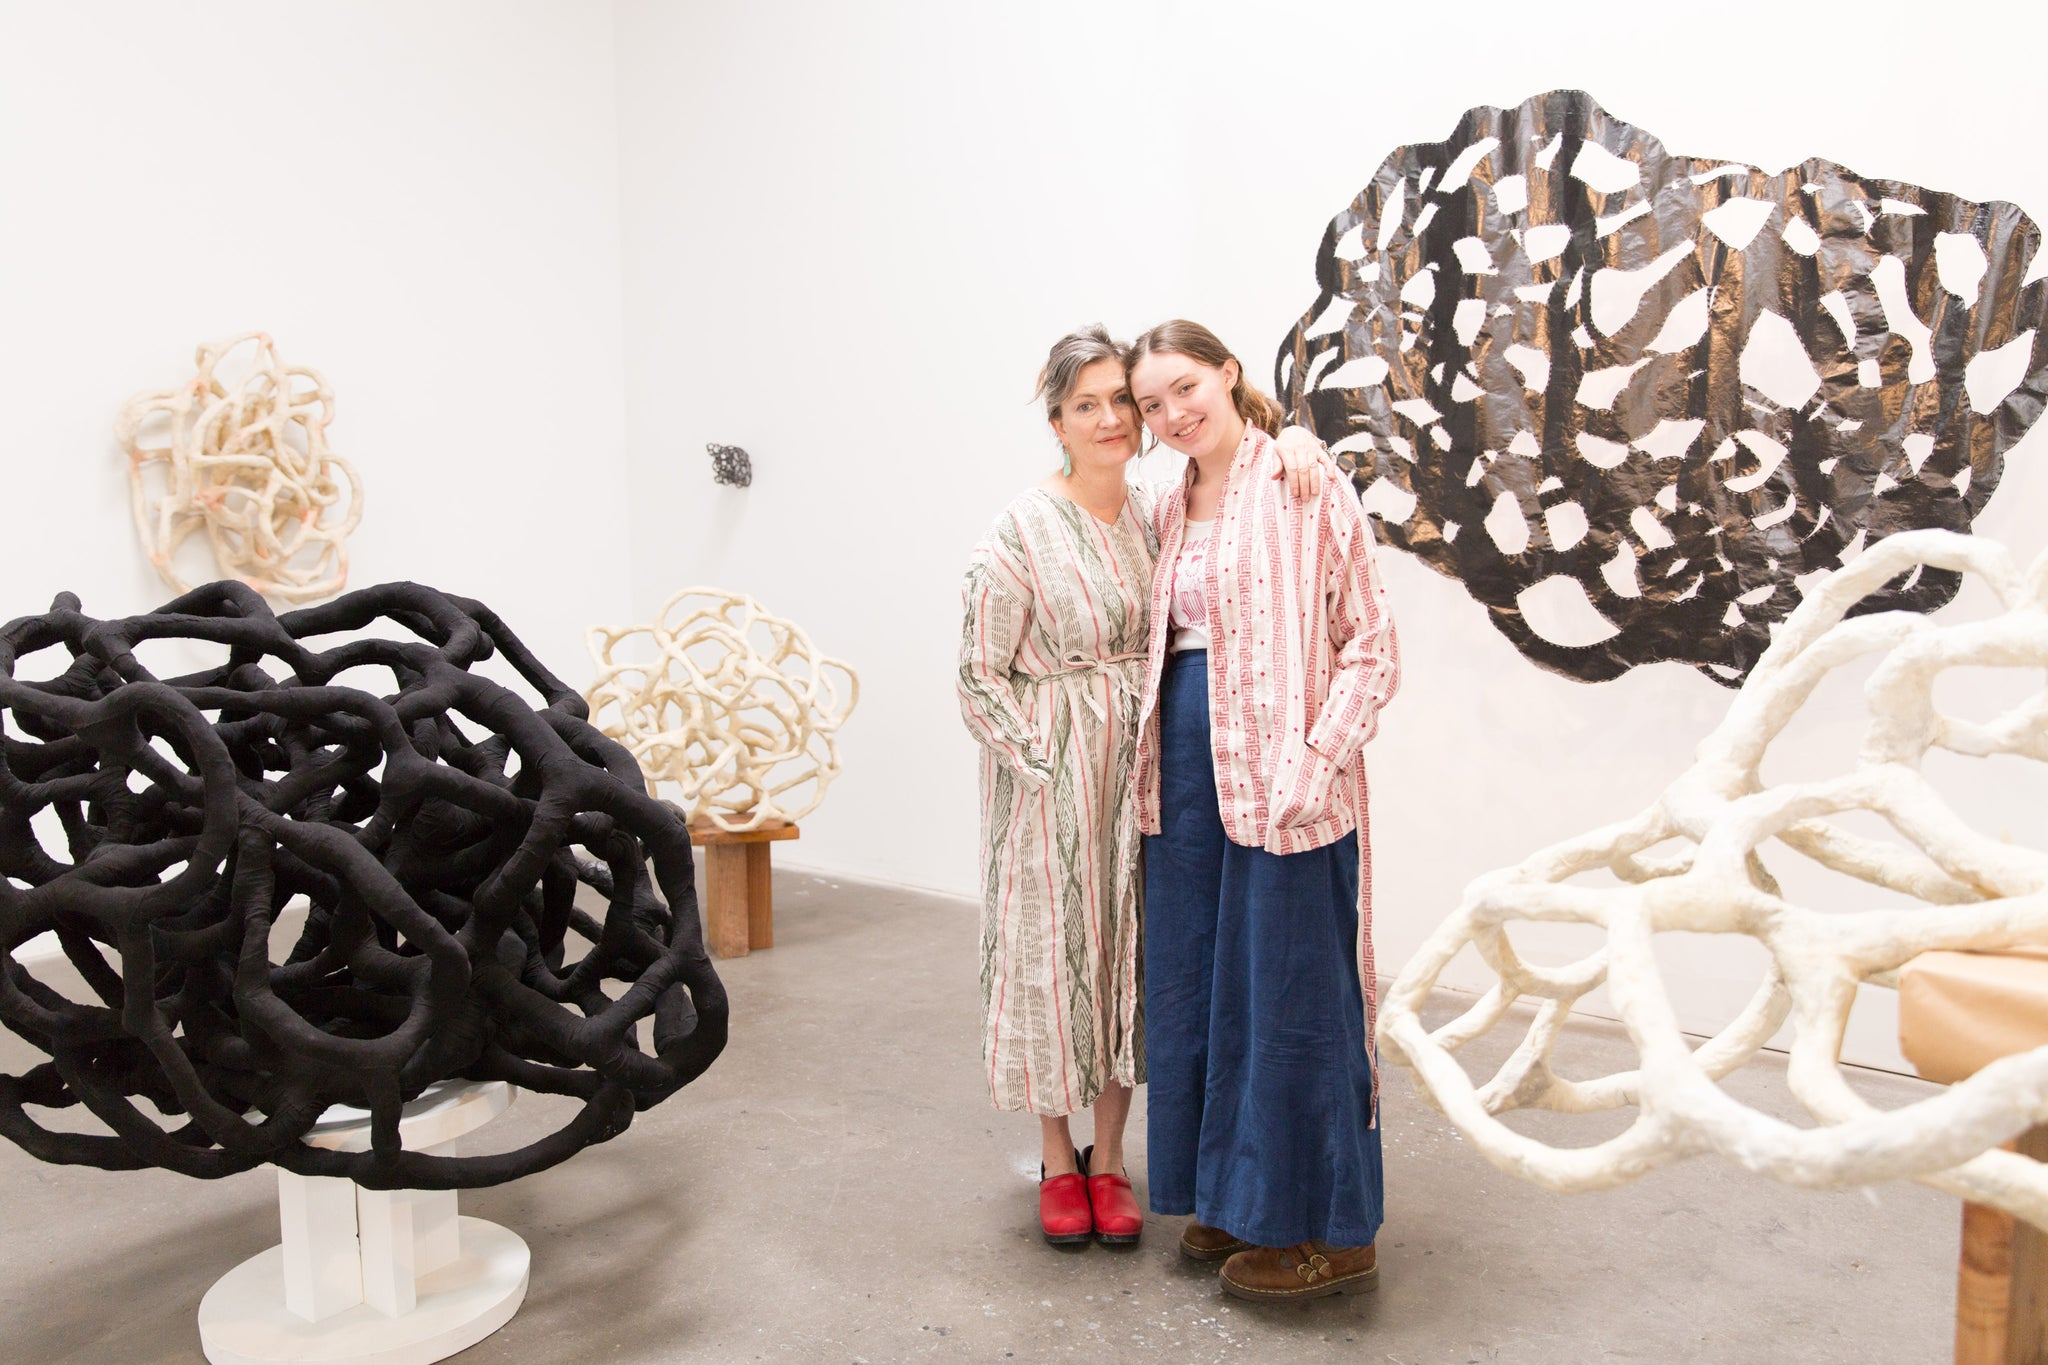 artist Laura Cooper and her daughter surrounded by sculpture in Los Angeles studio